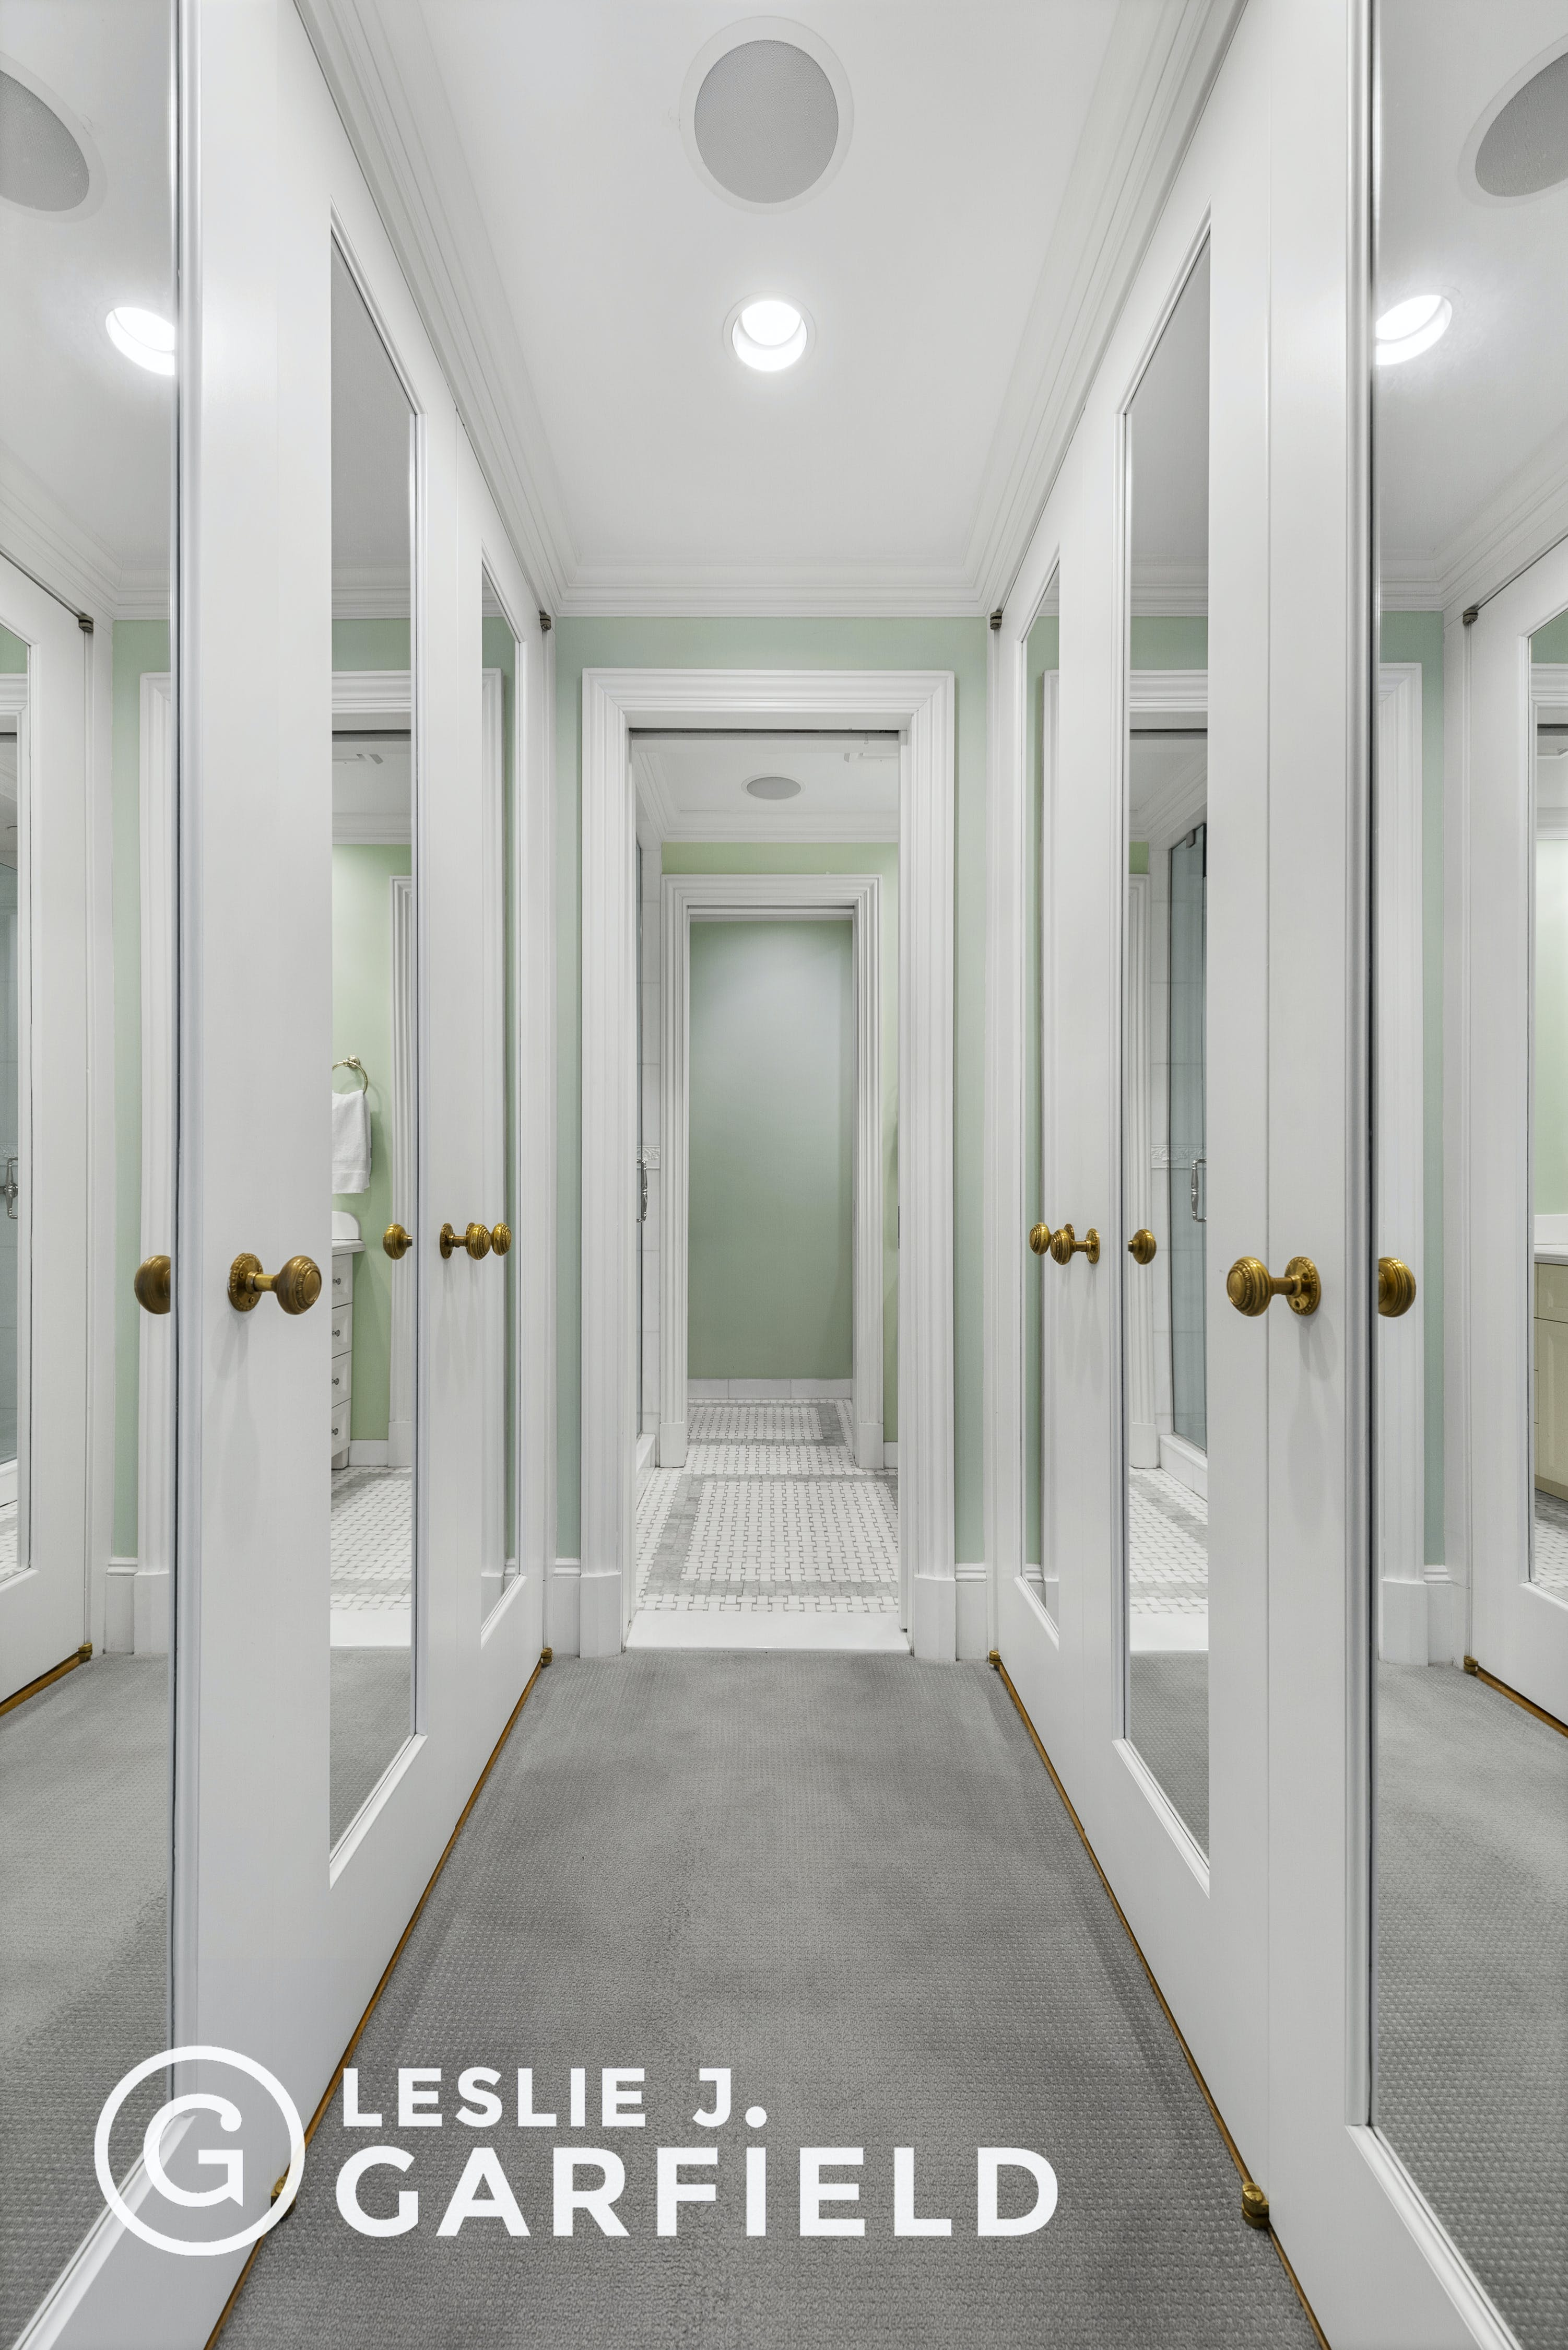 162 East 93rd Street - 43a88703-21d9-4d31-8b43-5bc860f07760 - New York City Townhouse Real Estate